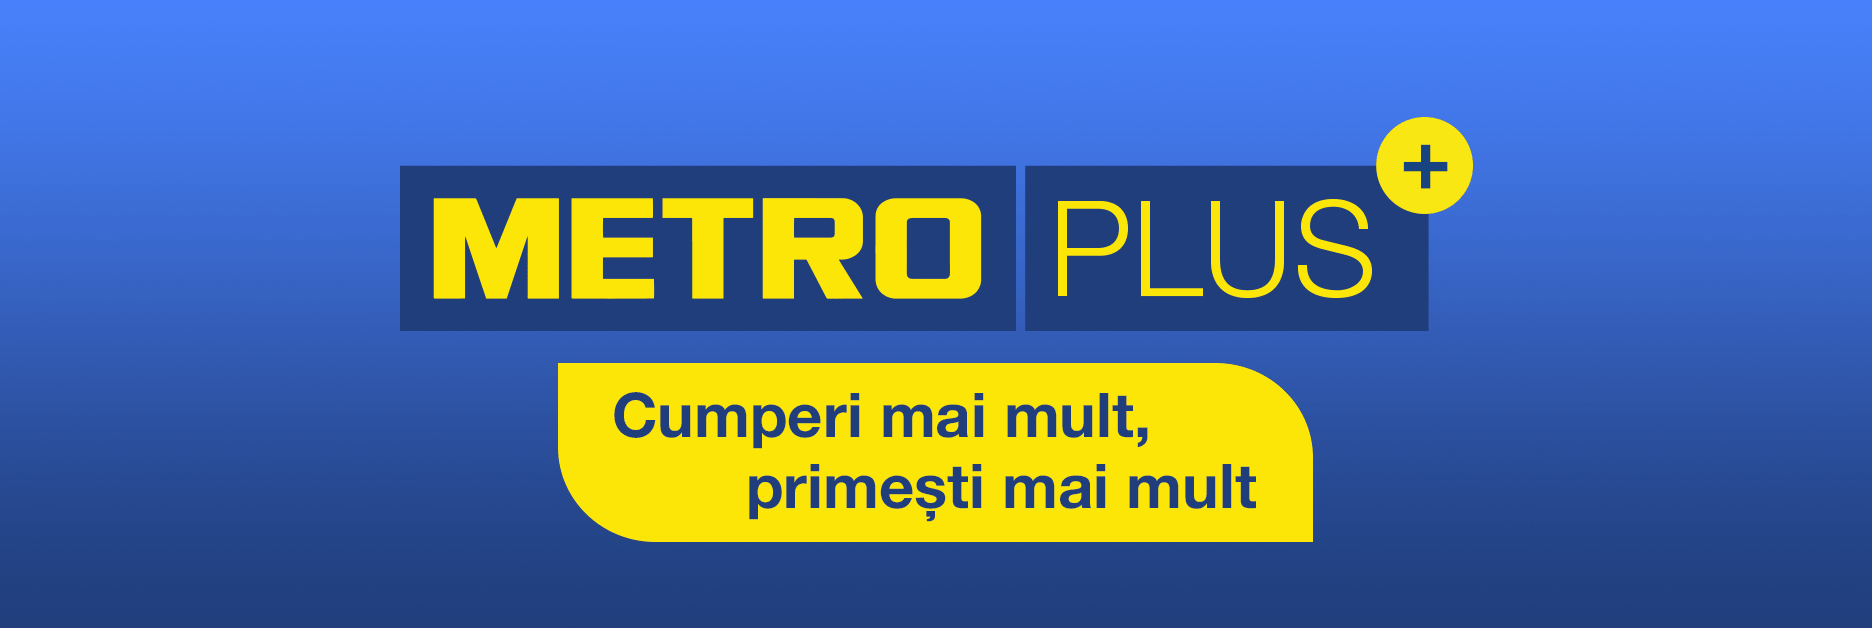 Metro plus program de loialitate